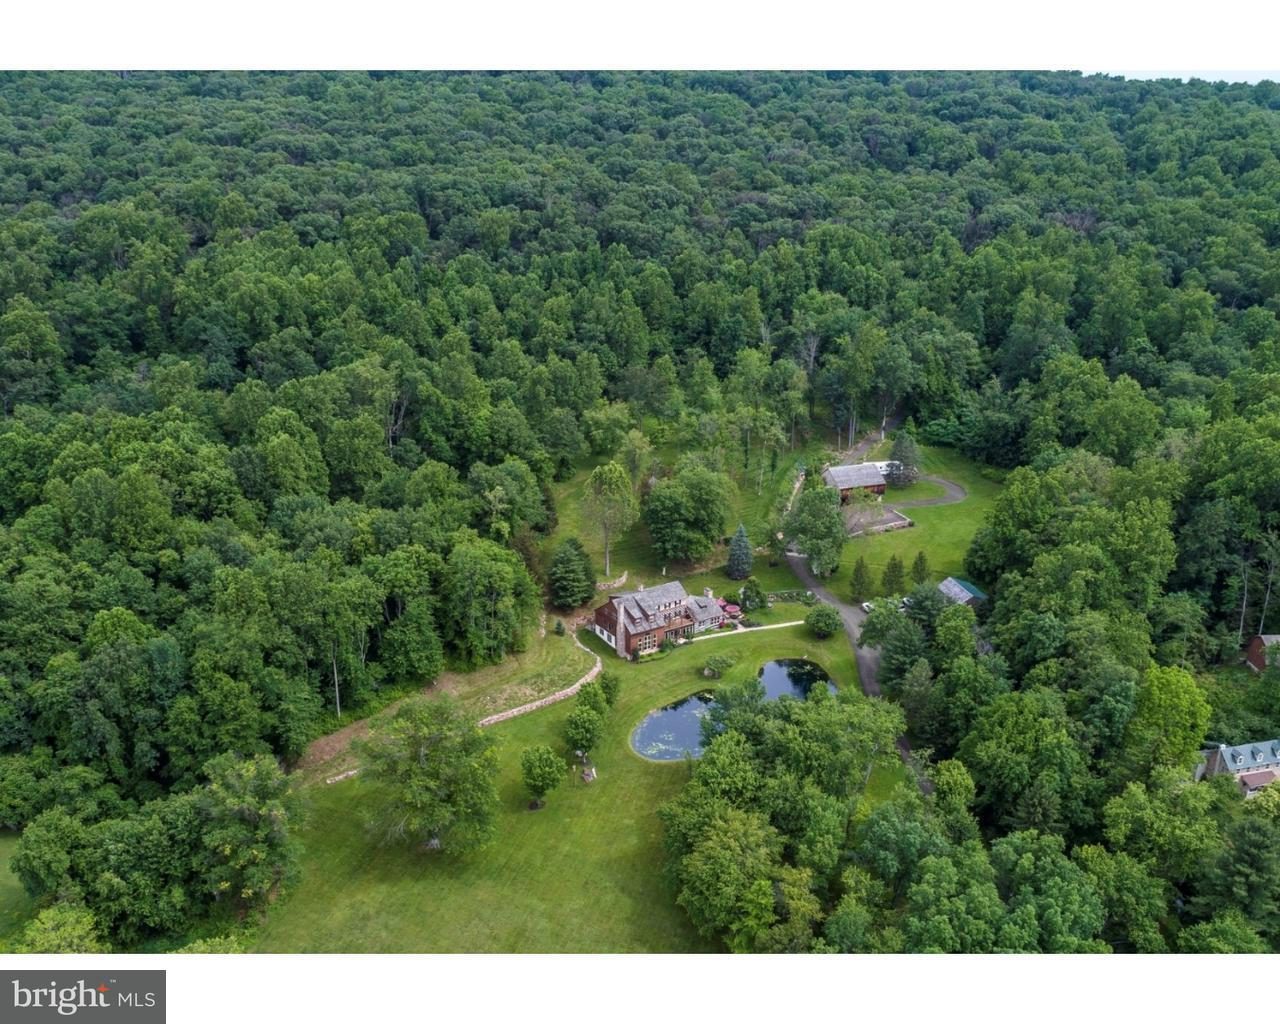 141 HOPEWELL RD, ELVERSON - Listed at $1,295,000, ELVERSON